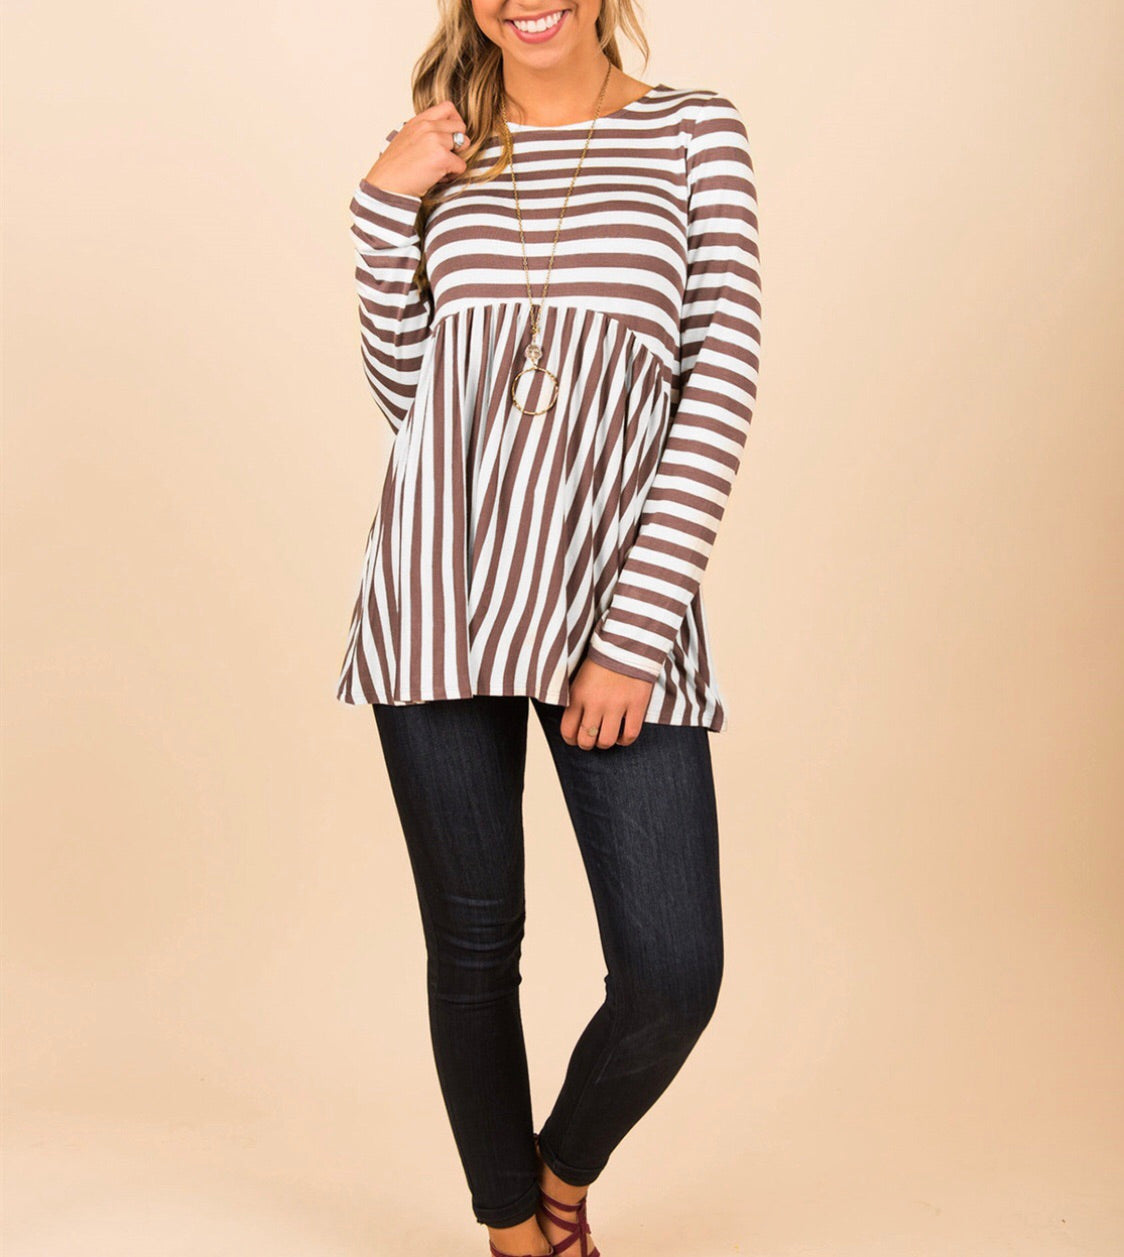 Scoop Neckline Brown Striped Top